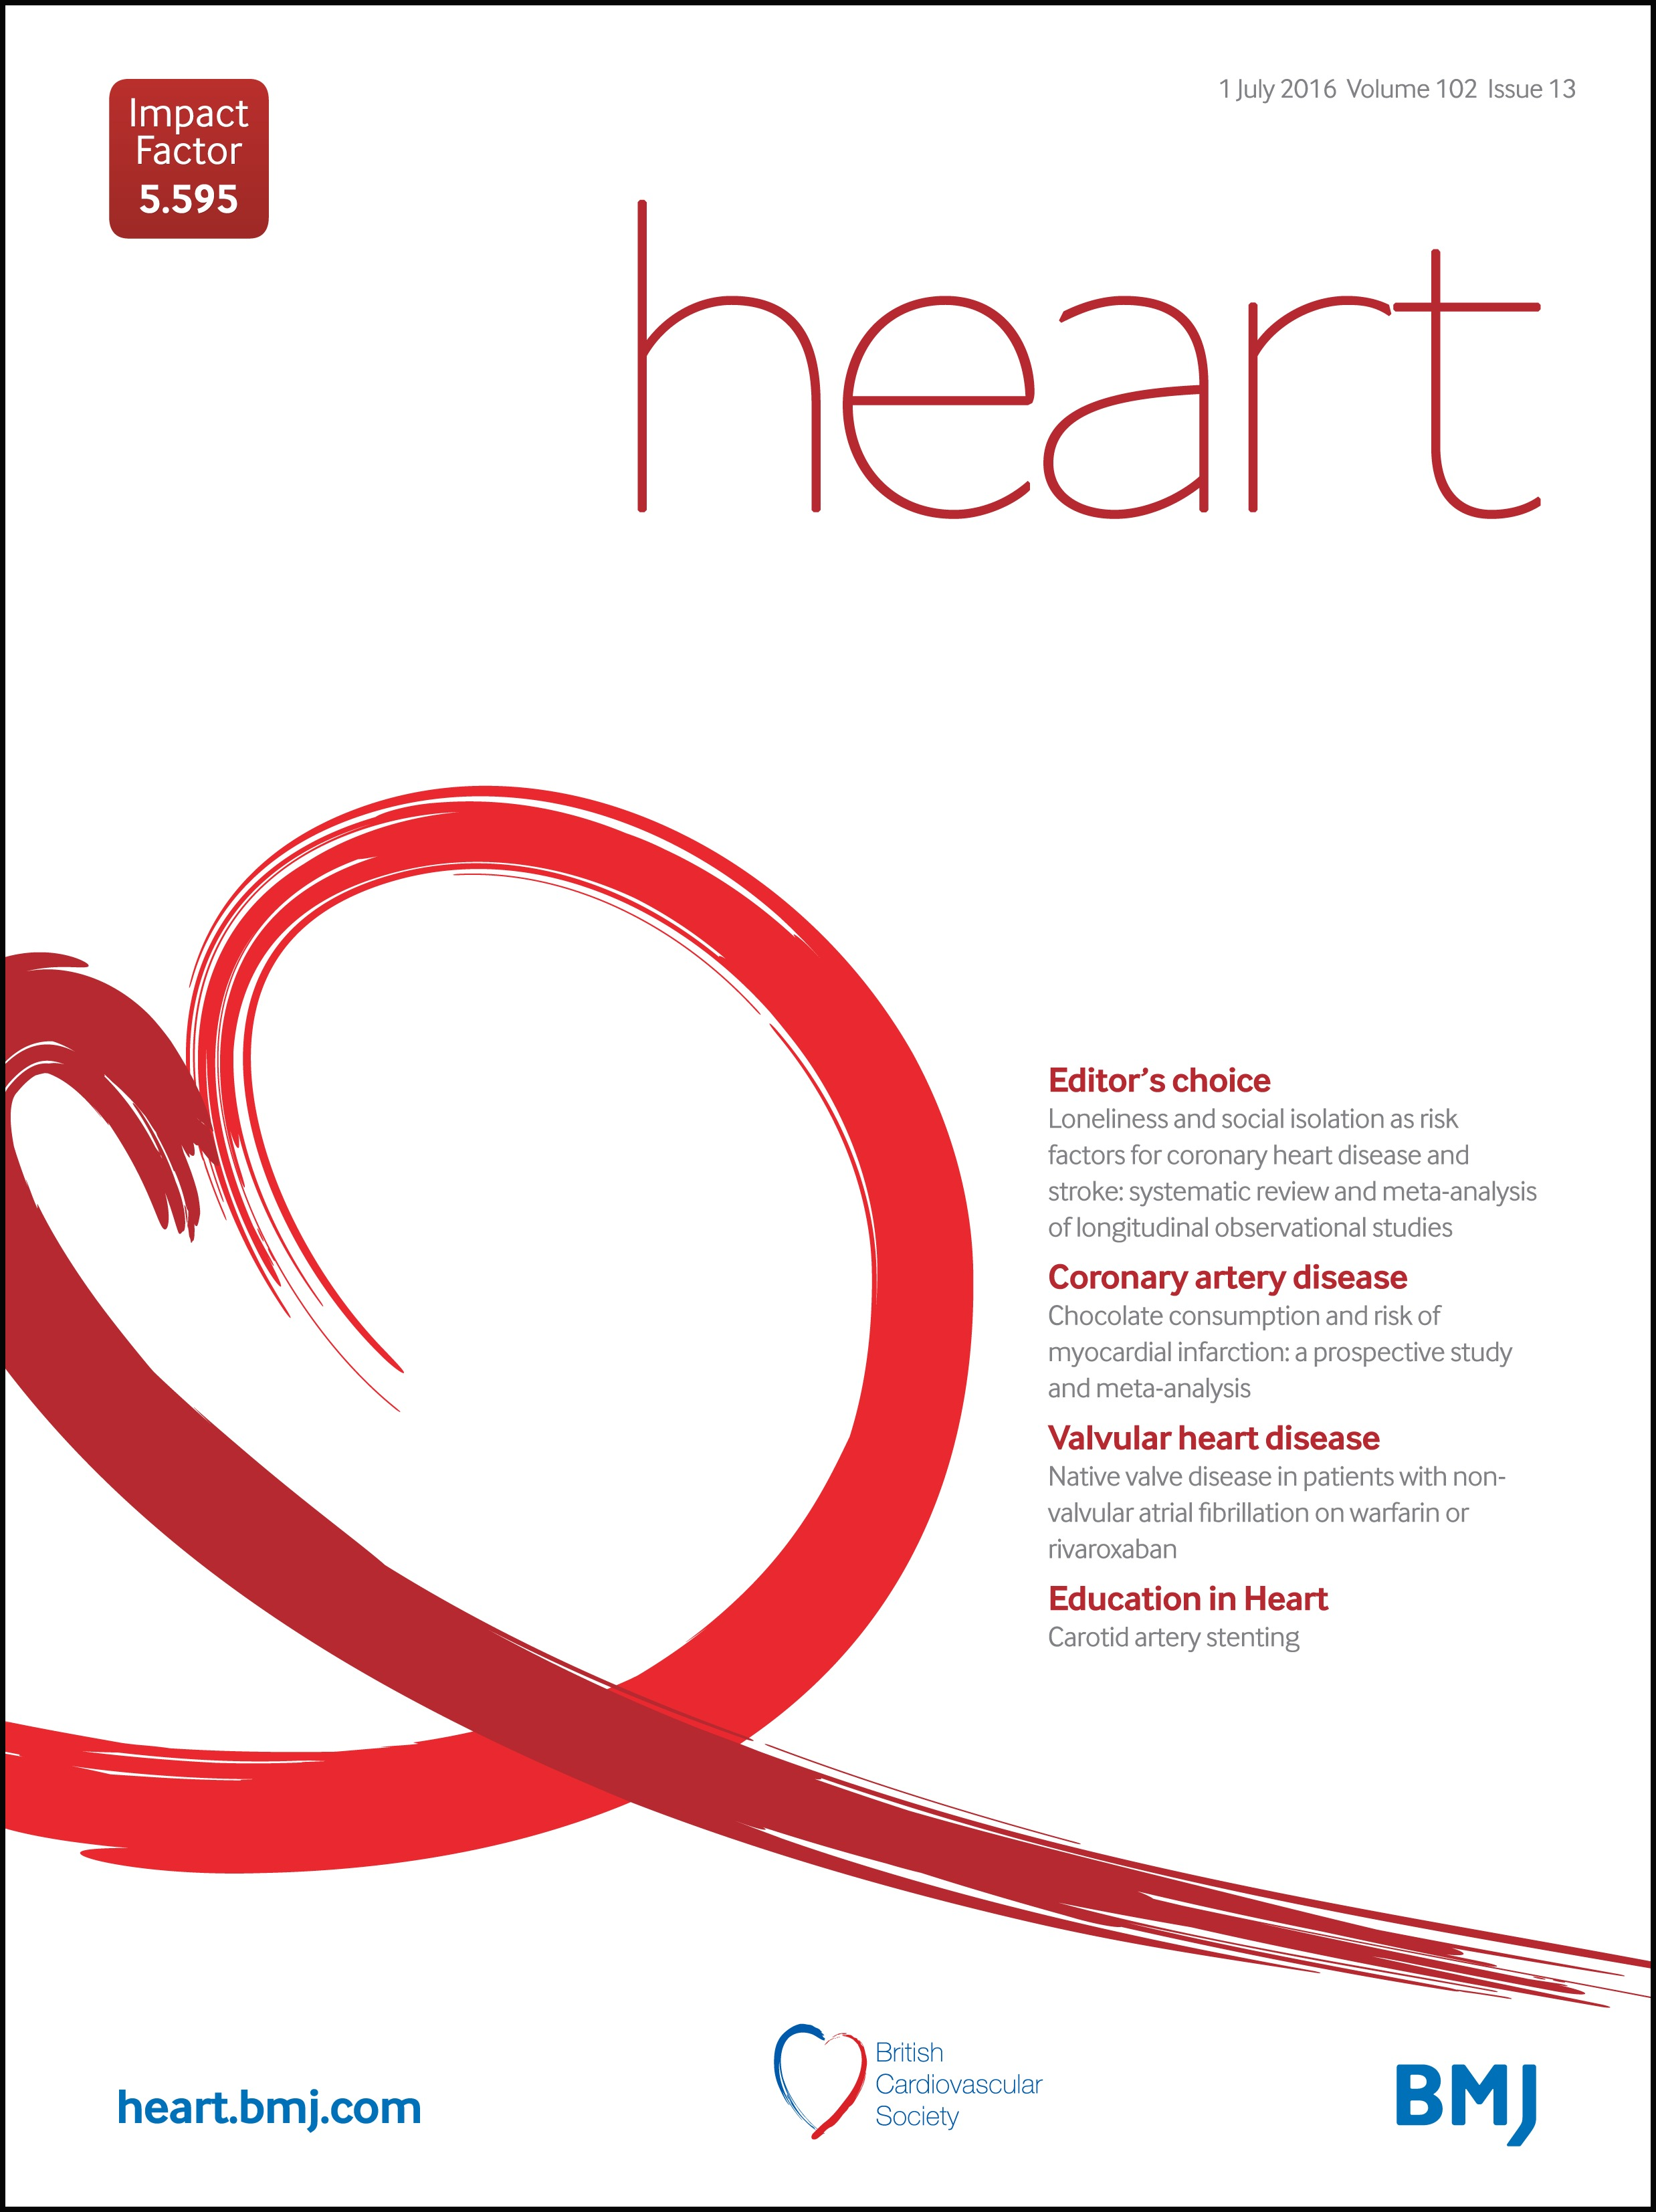 Loneliness And Social Isolation As Risk Factors For Coronary